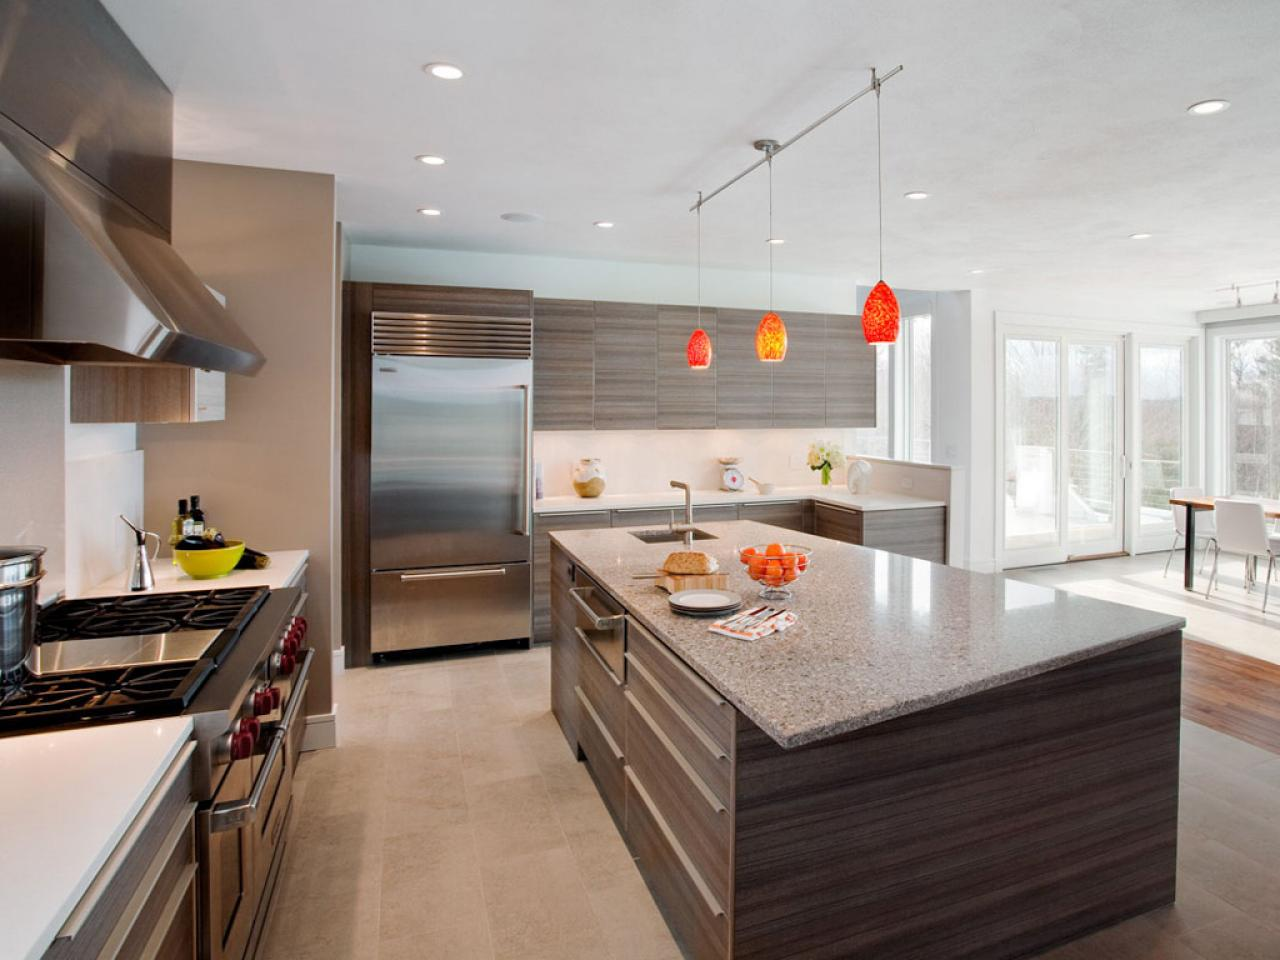 Luxurious touch applying a modern kitchen cabinets for Contemporary kitchen